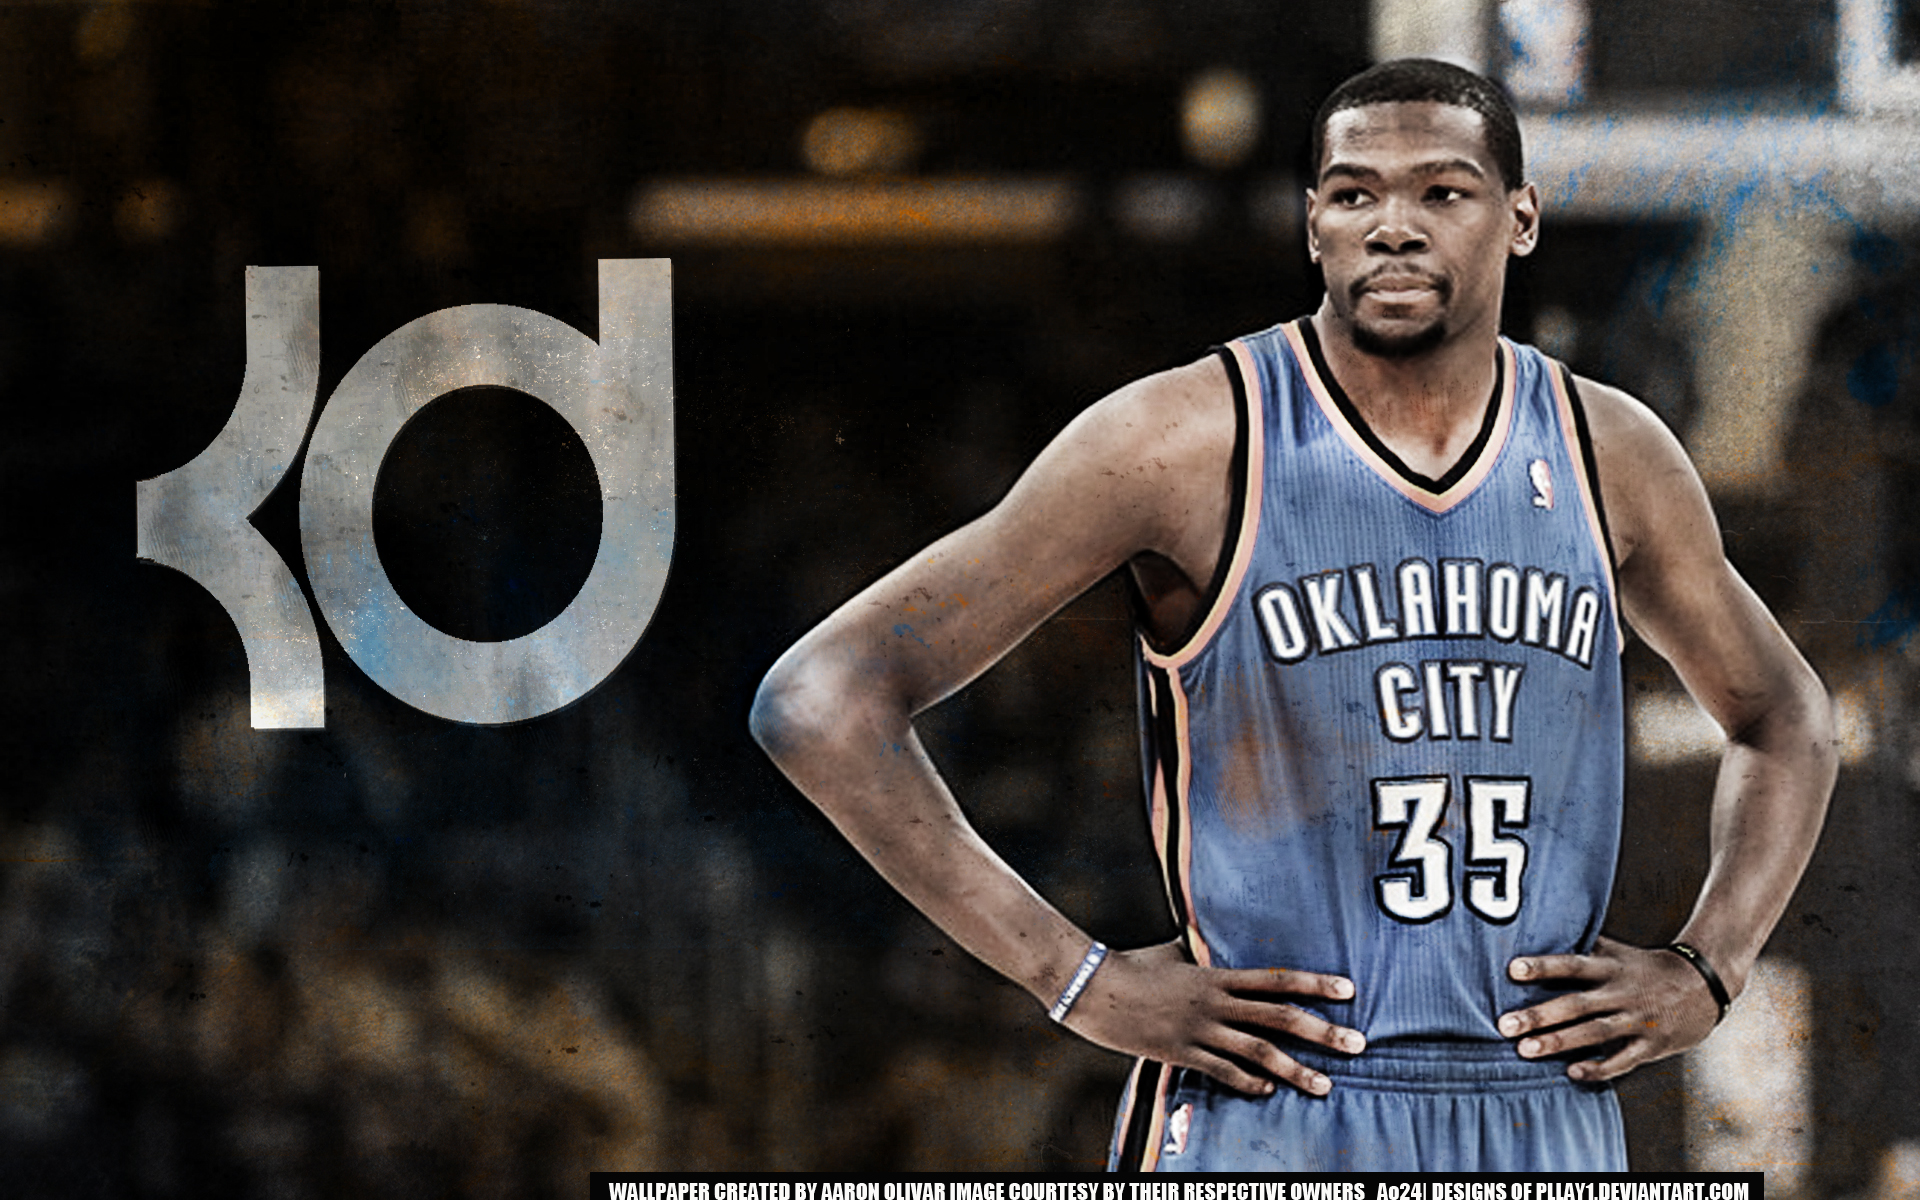 KD Sign Wallpaper – Free wallpaper download